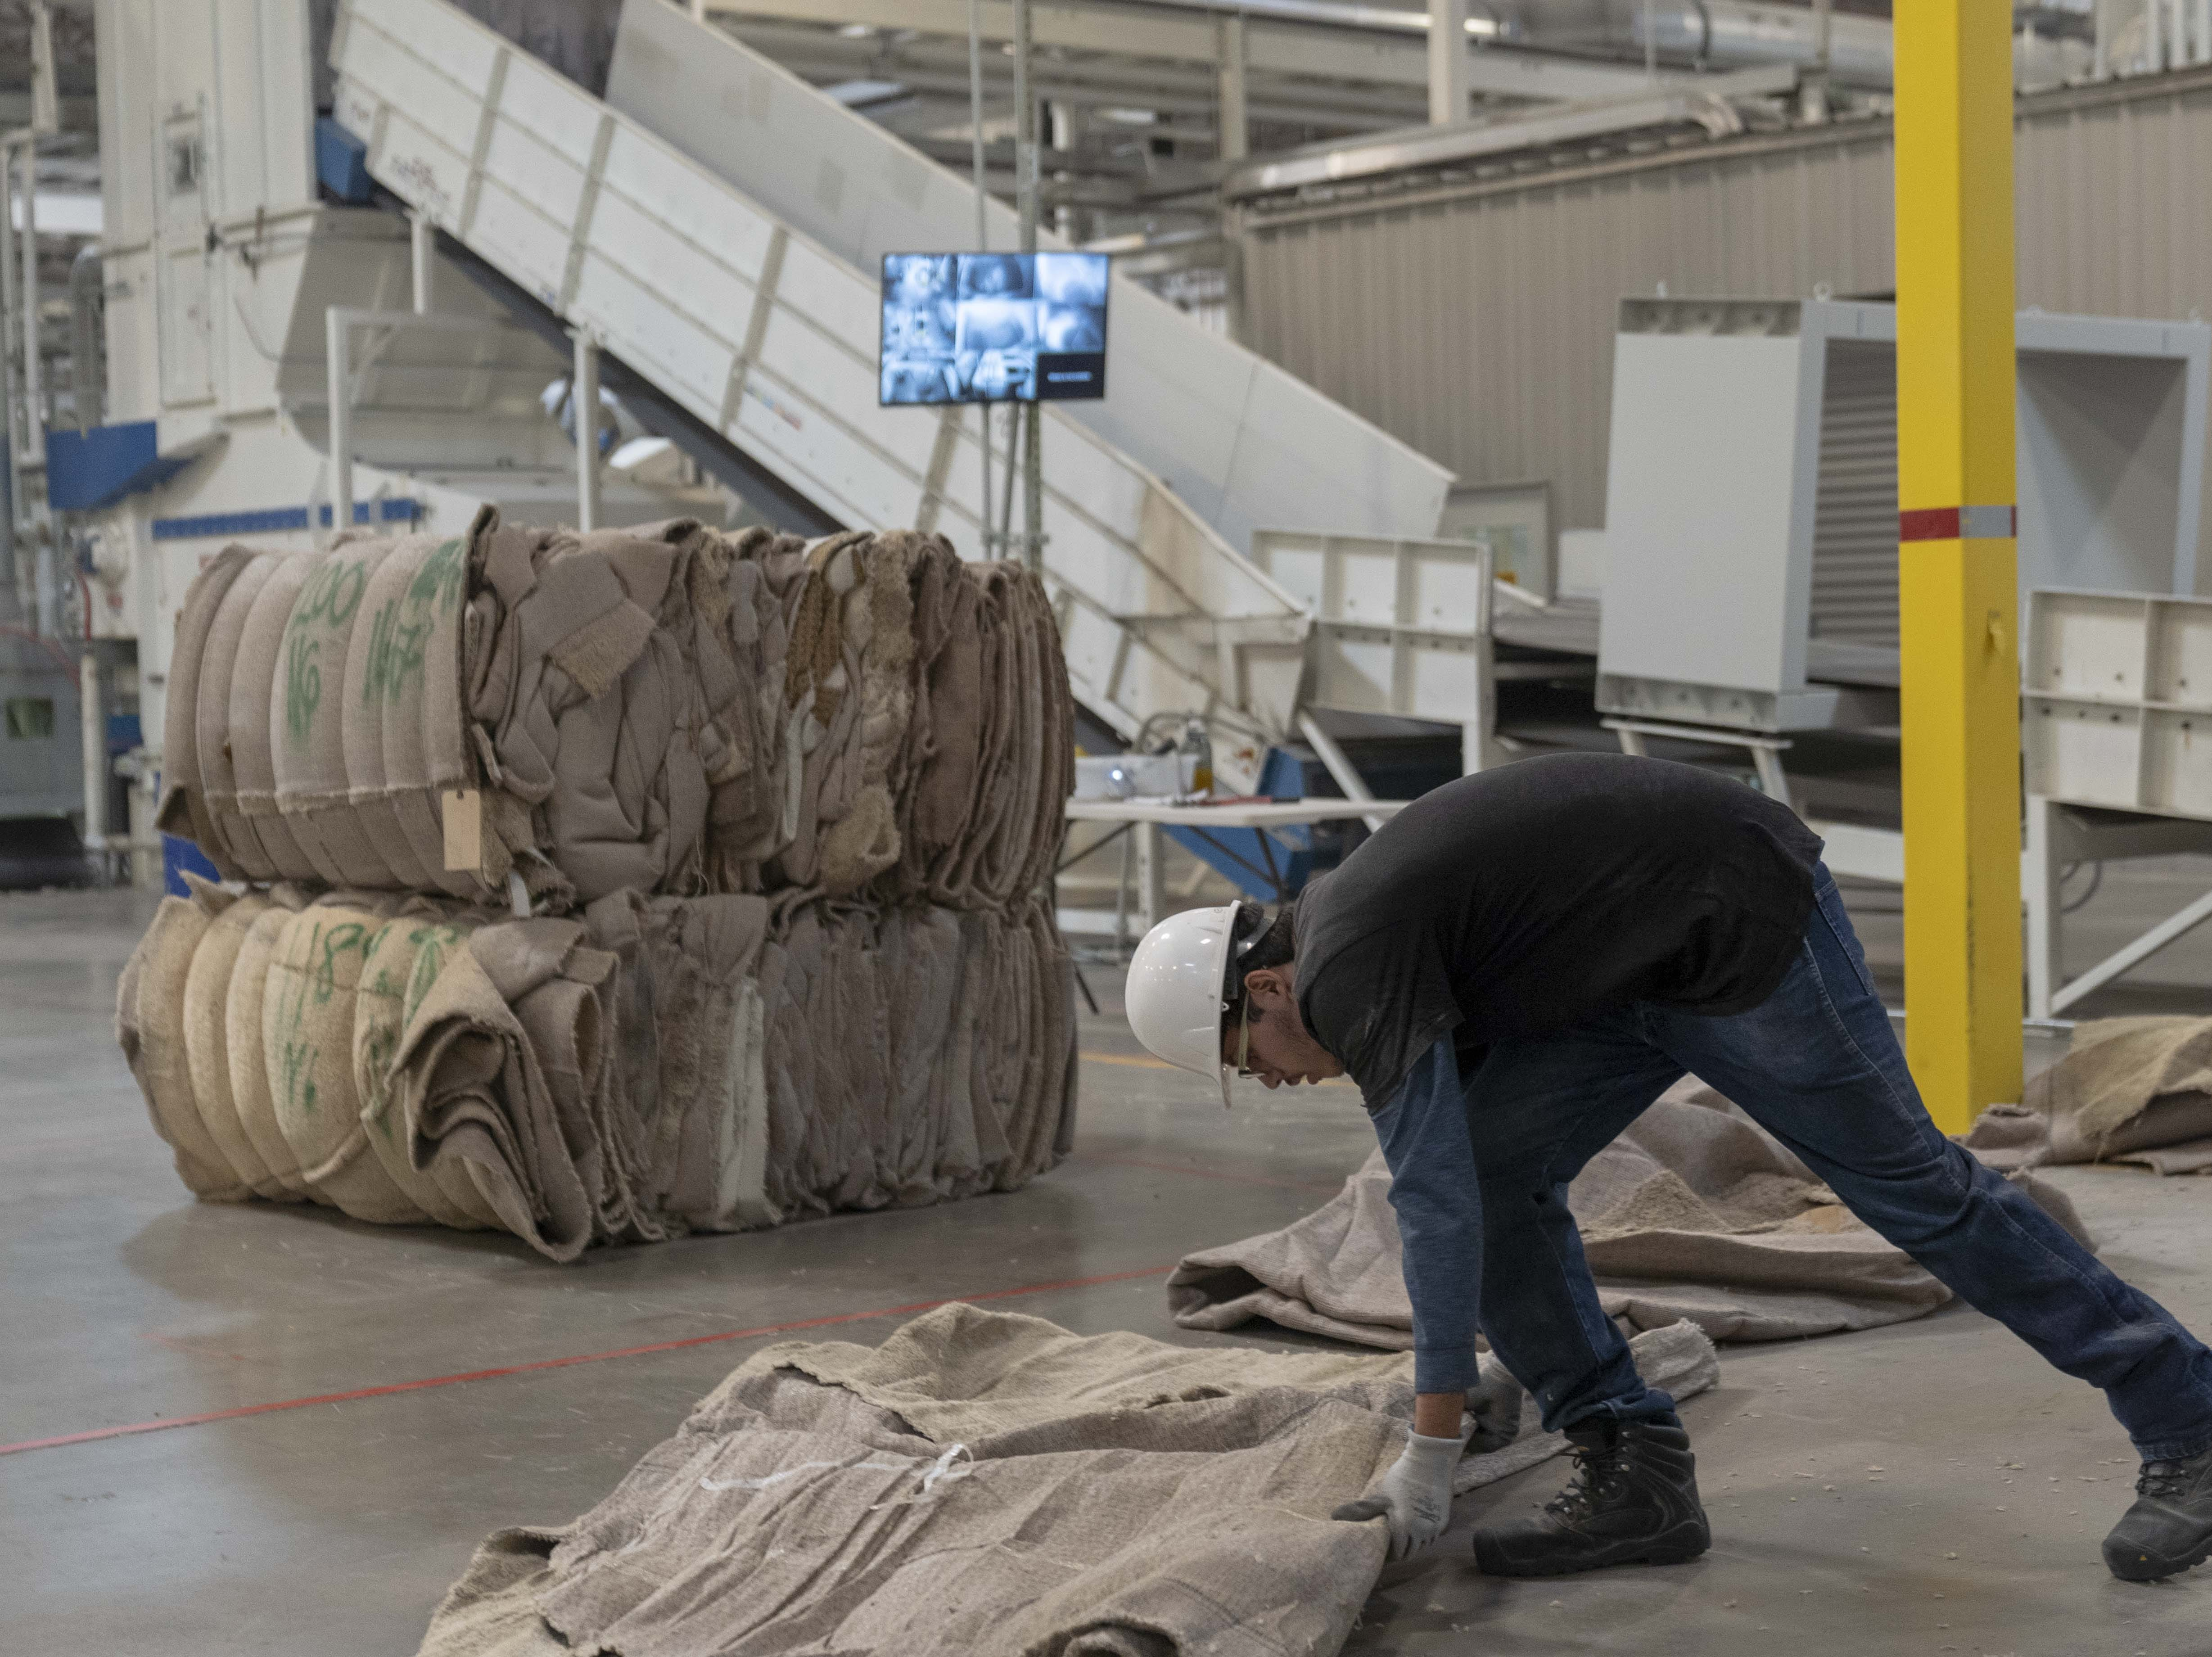 The Aquafil plant shreds, washes and separates materials from carpet remnants and worn carpets.